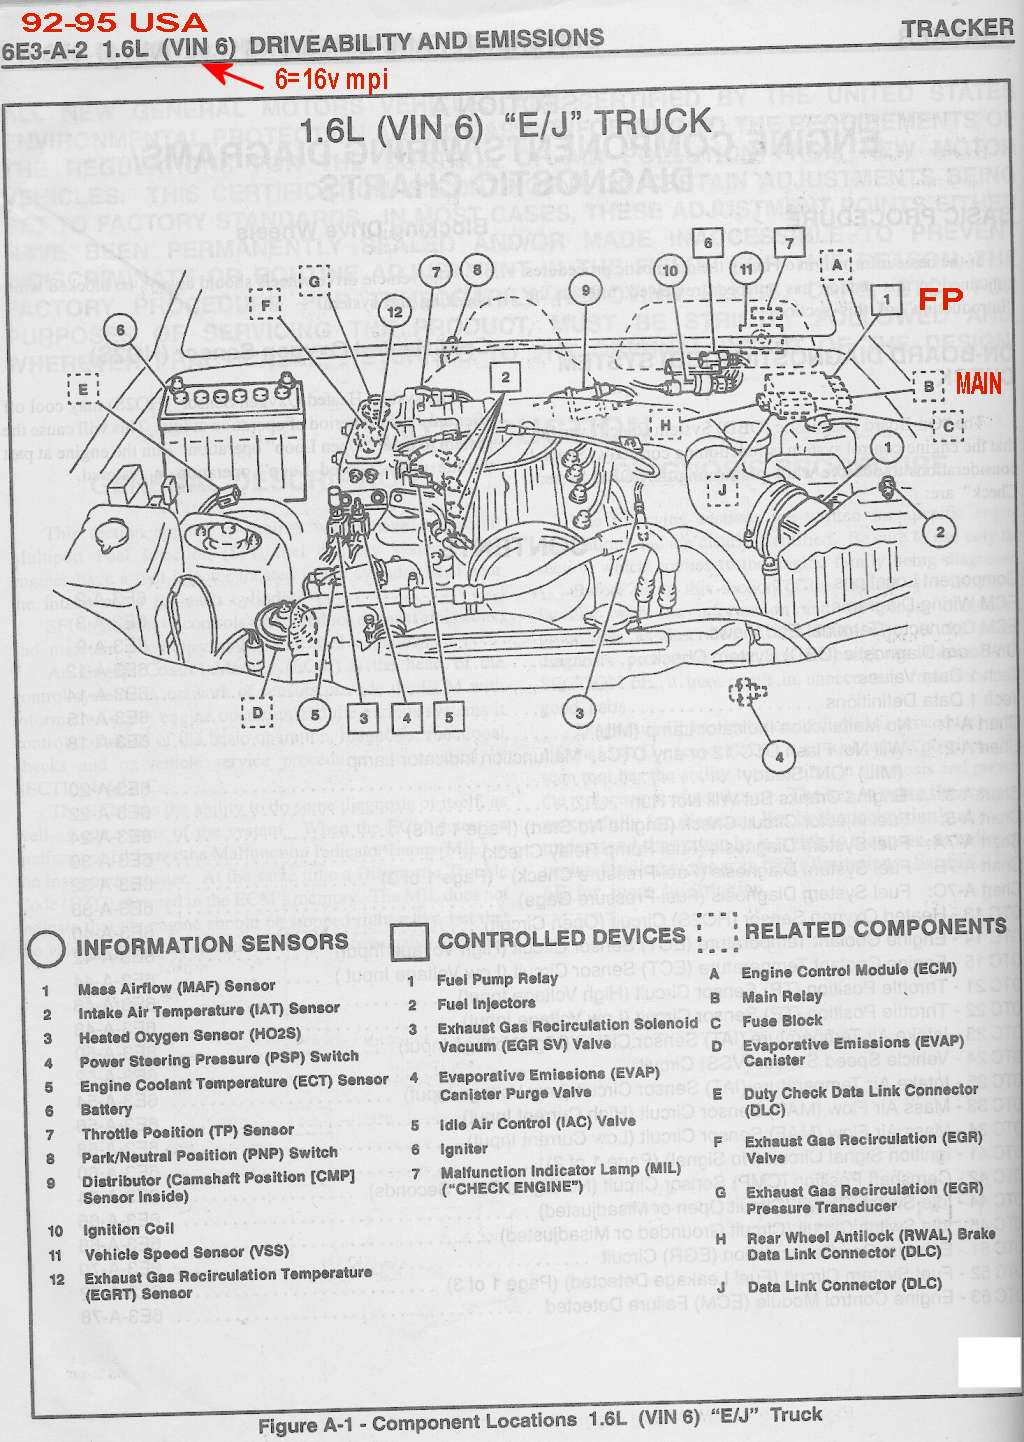 geo prizm engine diagram cityvoice org uk u2022 rh cityvoice org uk 1992 Geo Prizm Manual 1992 Geo Prizm Manual